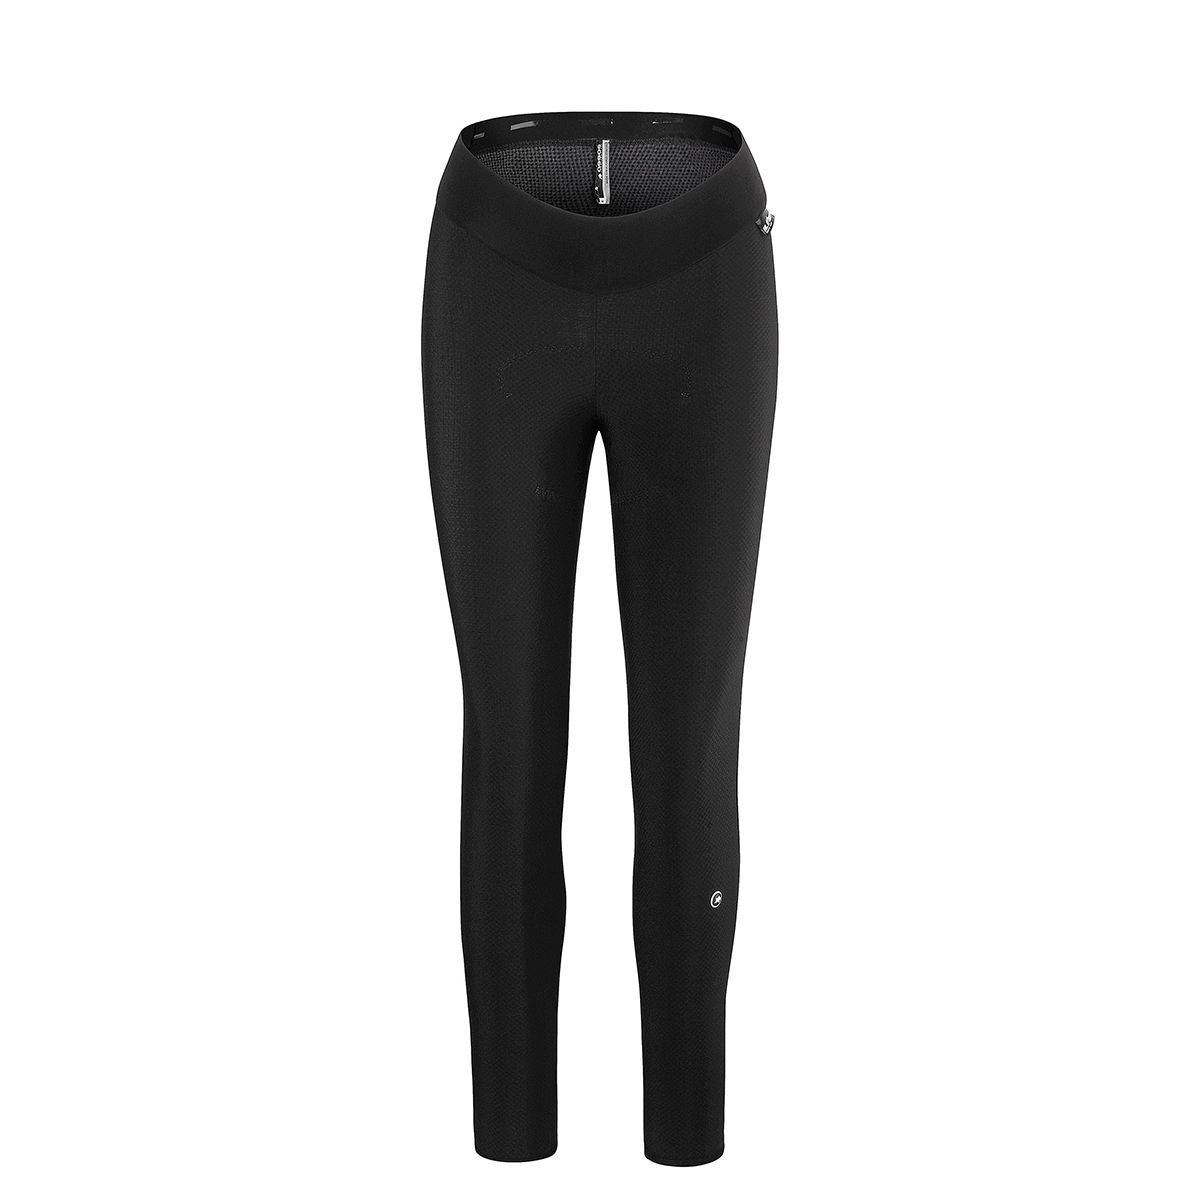 HL.TIBURUTIGHTS_S7 LADY Damen Tights